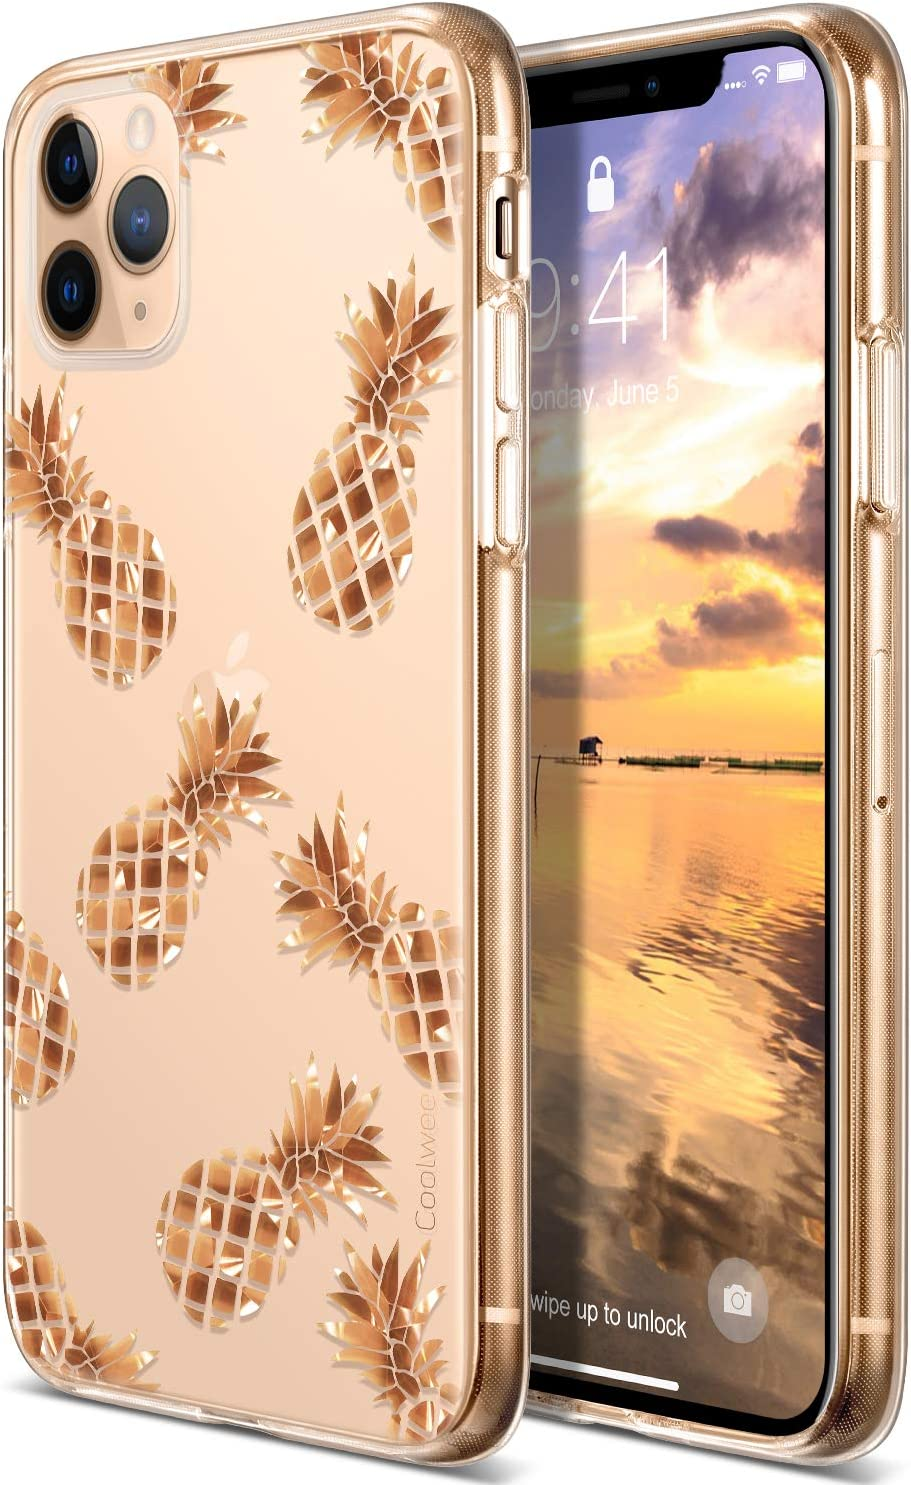 Amazon Com Coolwee For Iphone 11 Pro Max Case Rose Gold Pineapple Floral Case Women Girl Men Foil Clear Design Shiny Glitter Hard Back Case Soft Tpu Bumper Cover For Apple Iphone 11